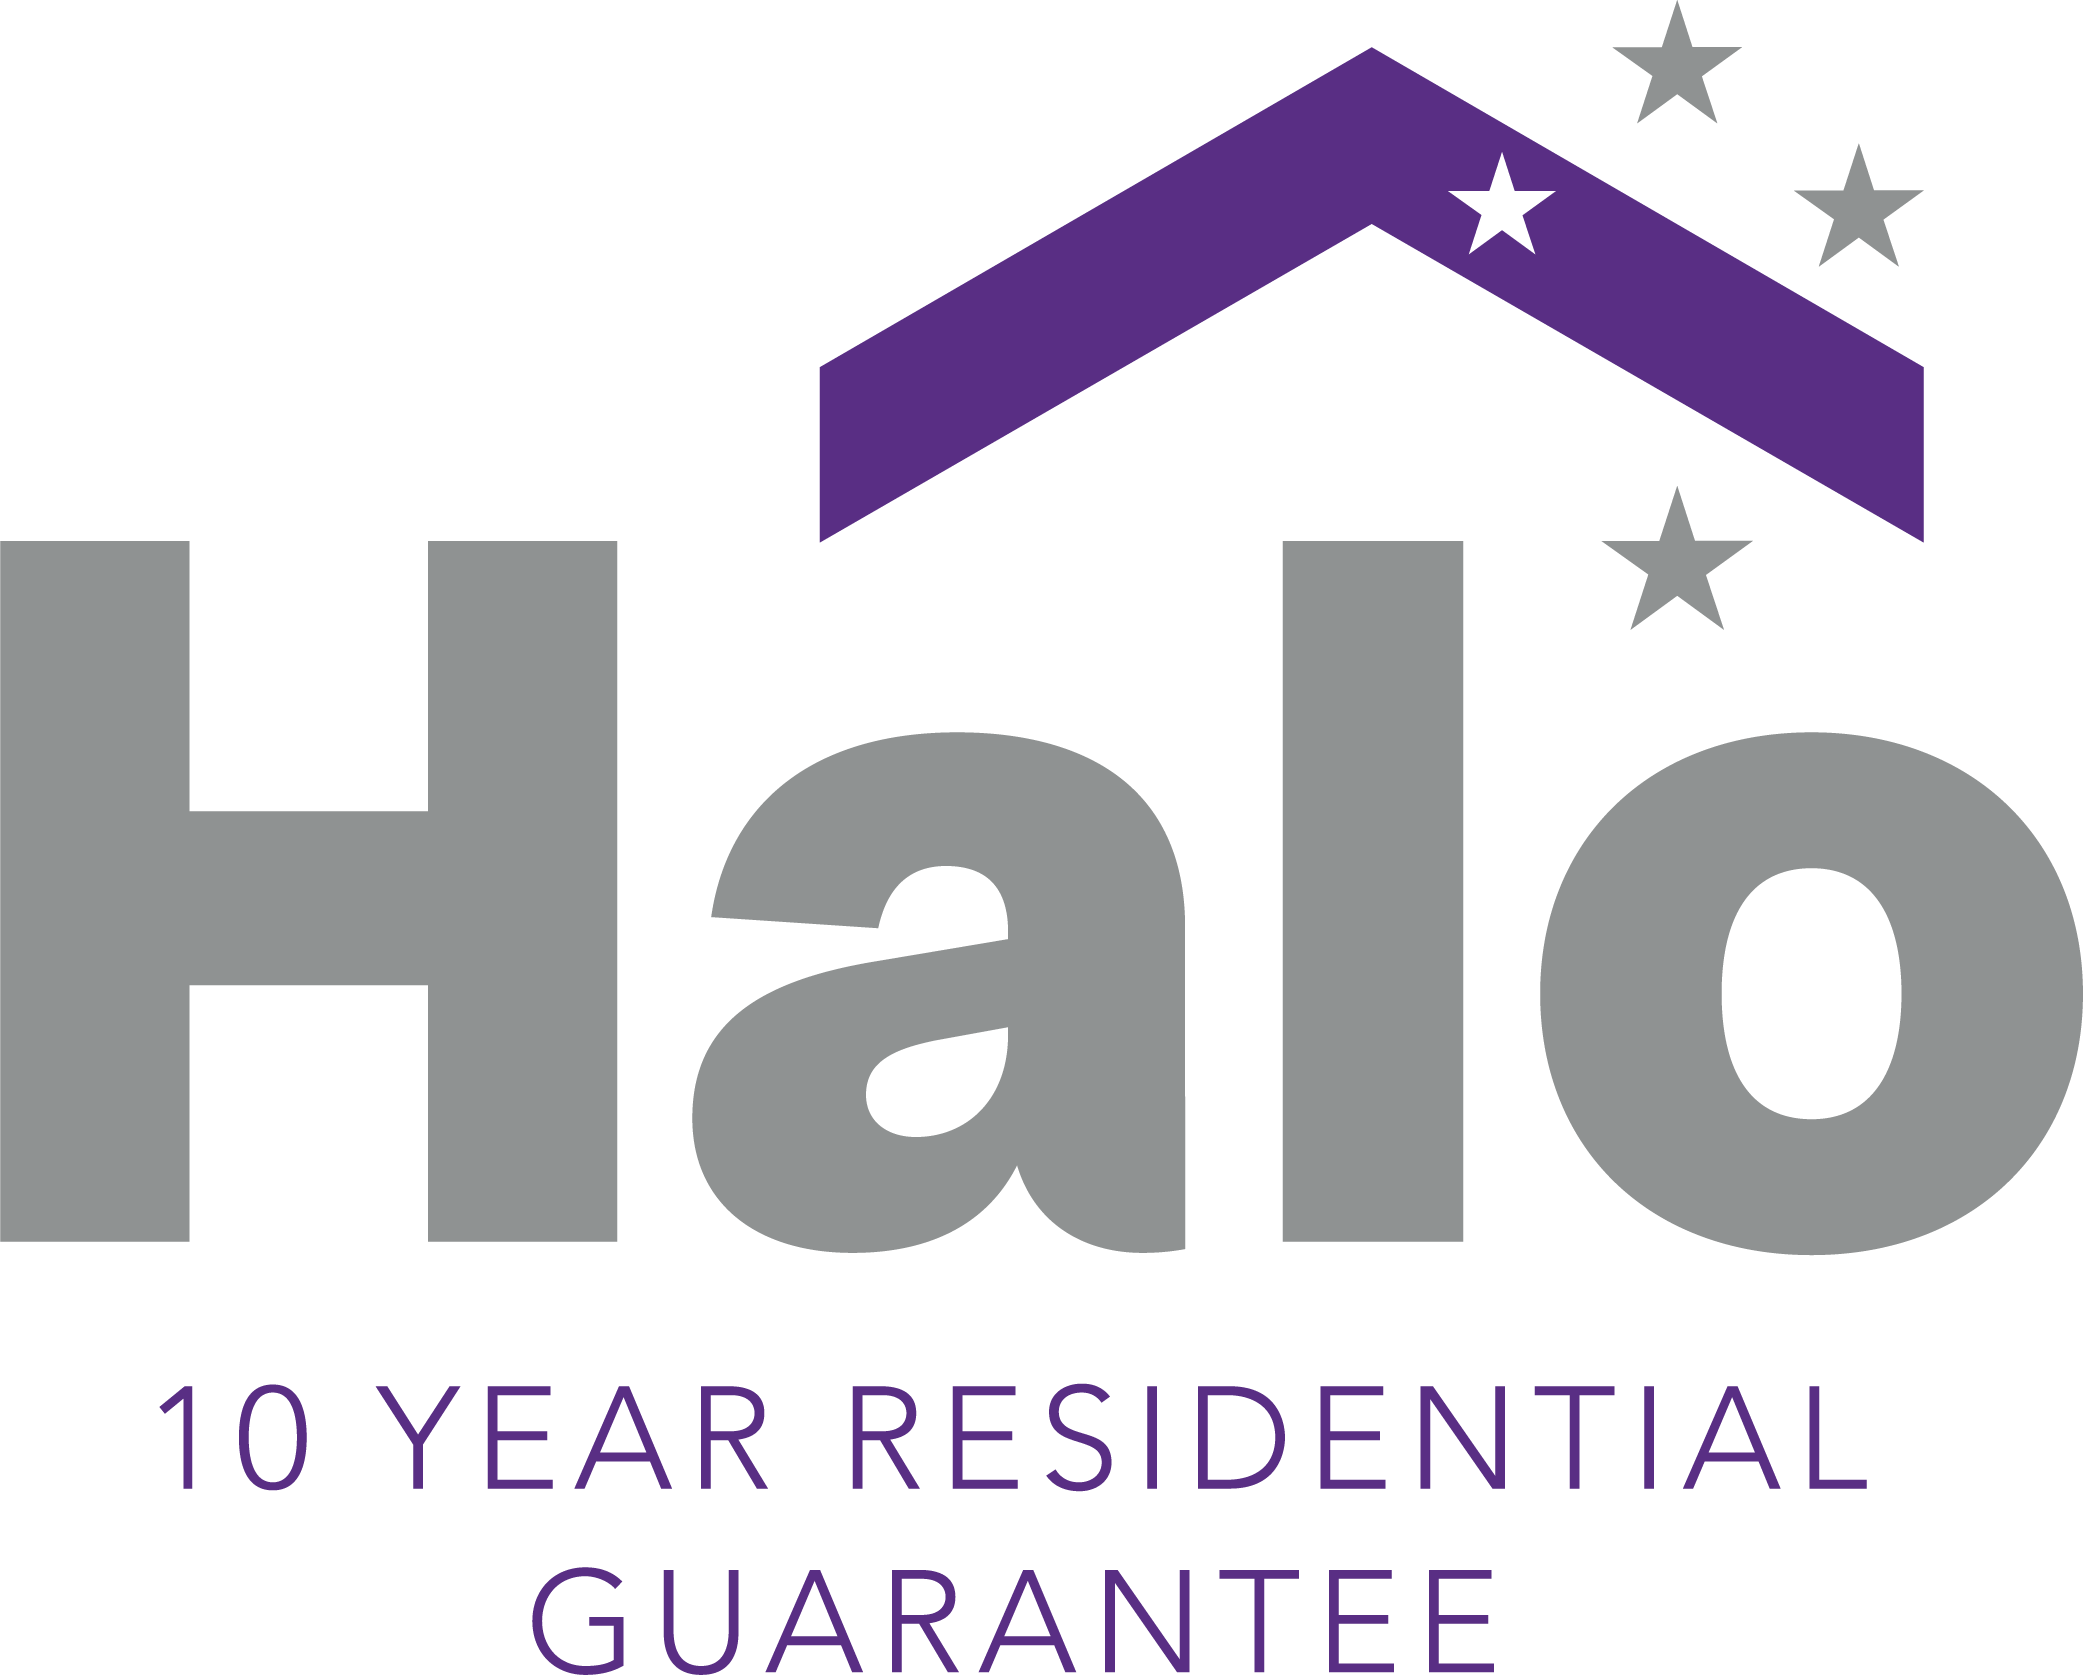 Halo 10 Year Residential Guarantee